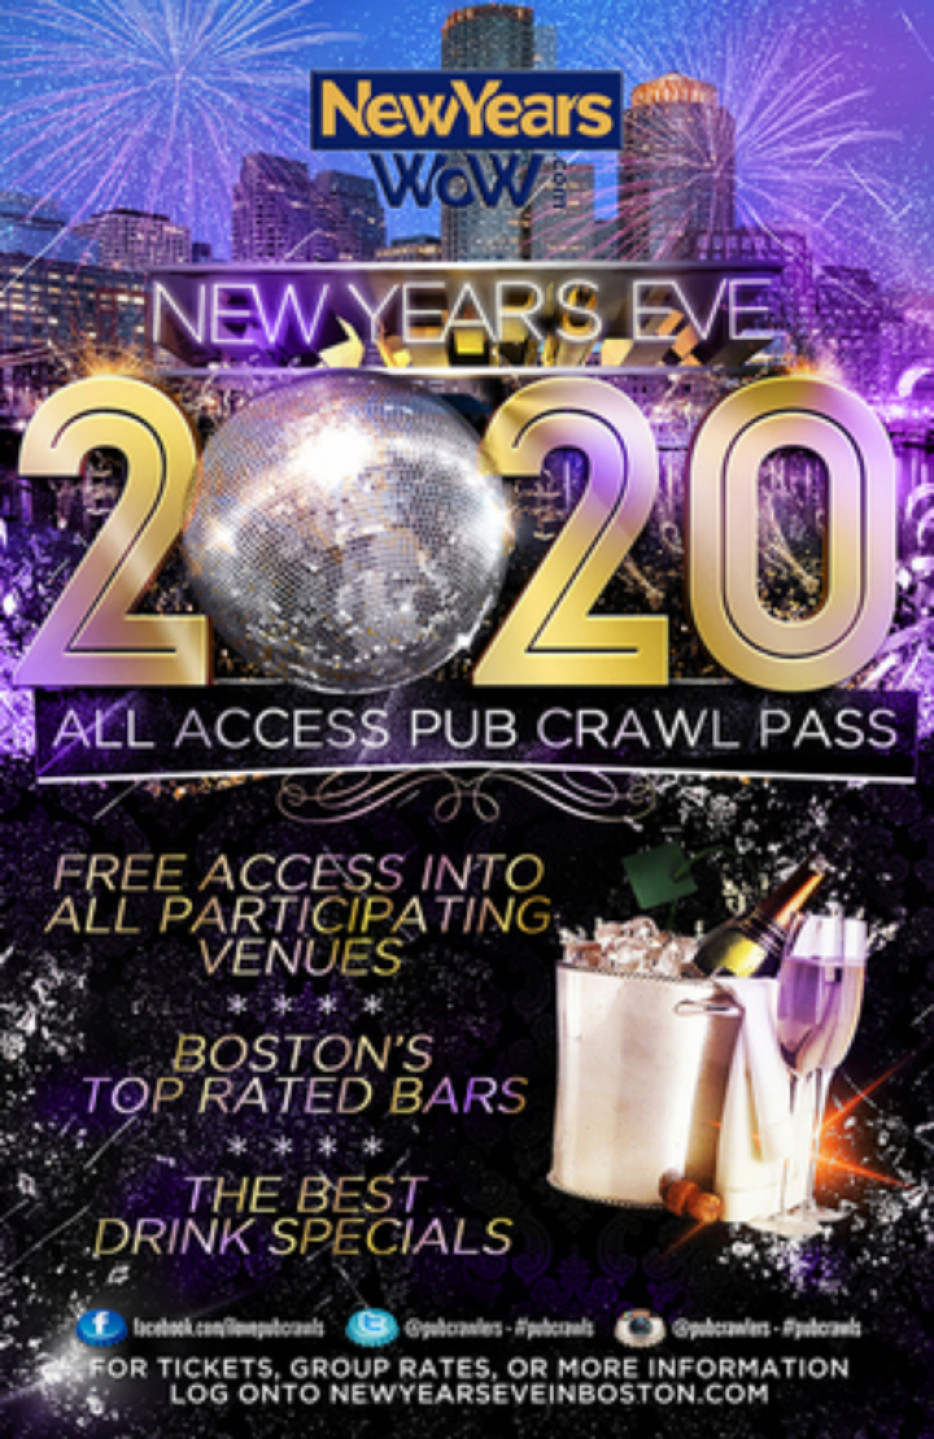 Boston New Year's Eve All Access Pub Crawl Pass NYE (Faneuil Hall)